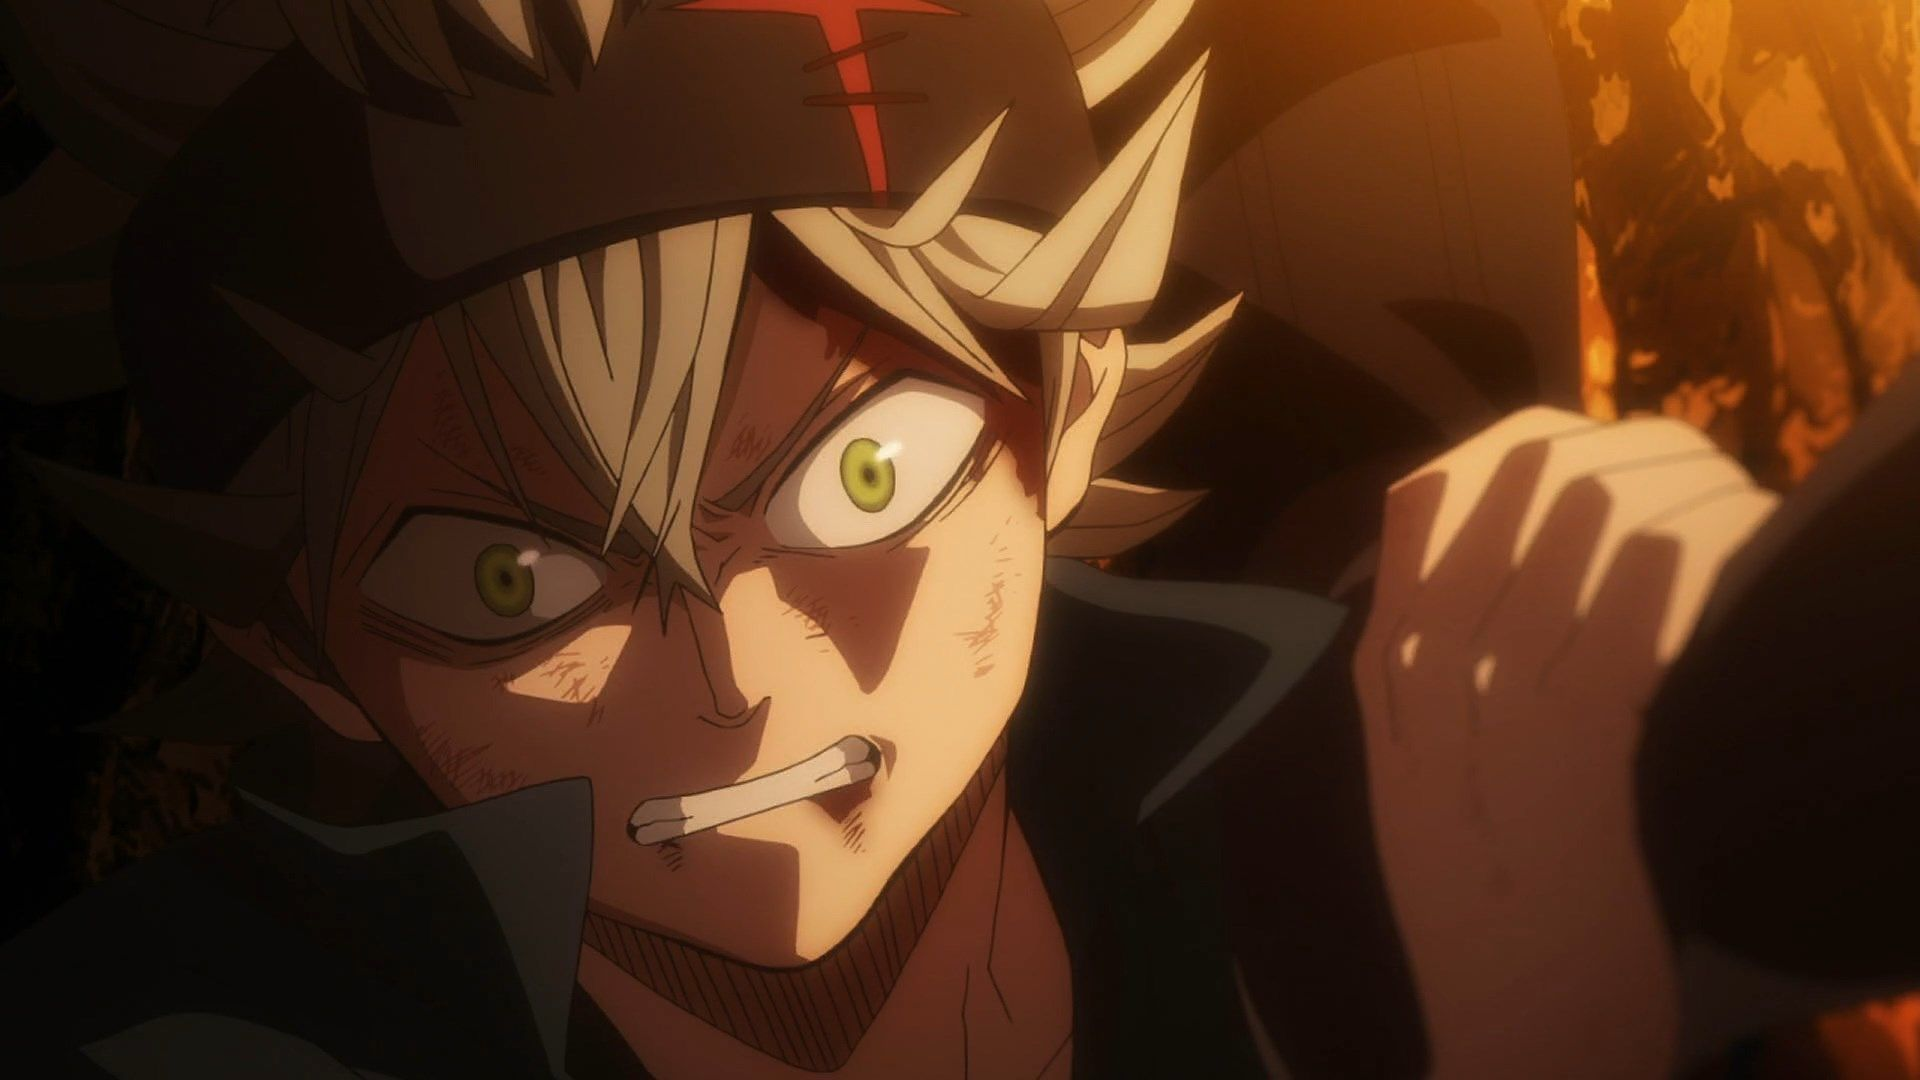 Black Clover 1920x1080 Wallpapers Top Free Black Clover 1920x1080 Backgrounds Wallpaperaccess